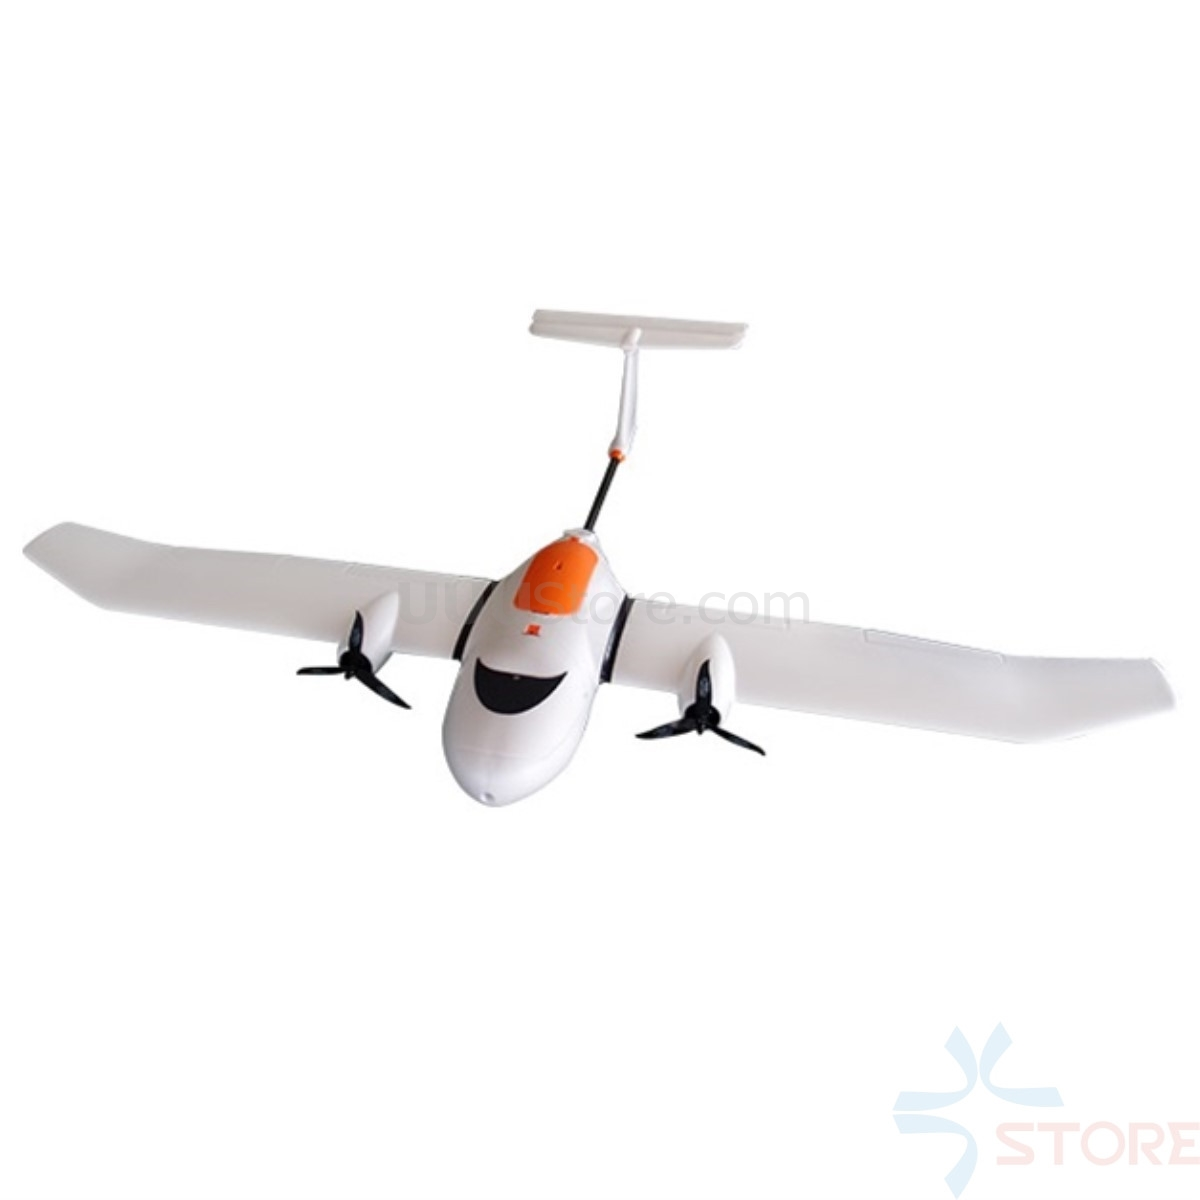 Skywalker EVE 2000 2240mm Wingspan EPO FPV RC Airplane UAV Aircraft Fixed Wing Drone White image